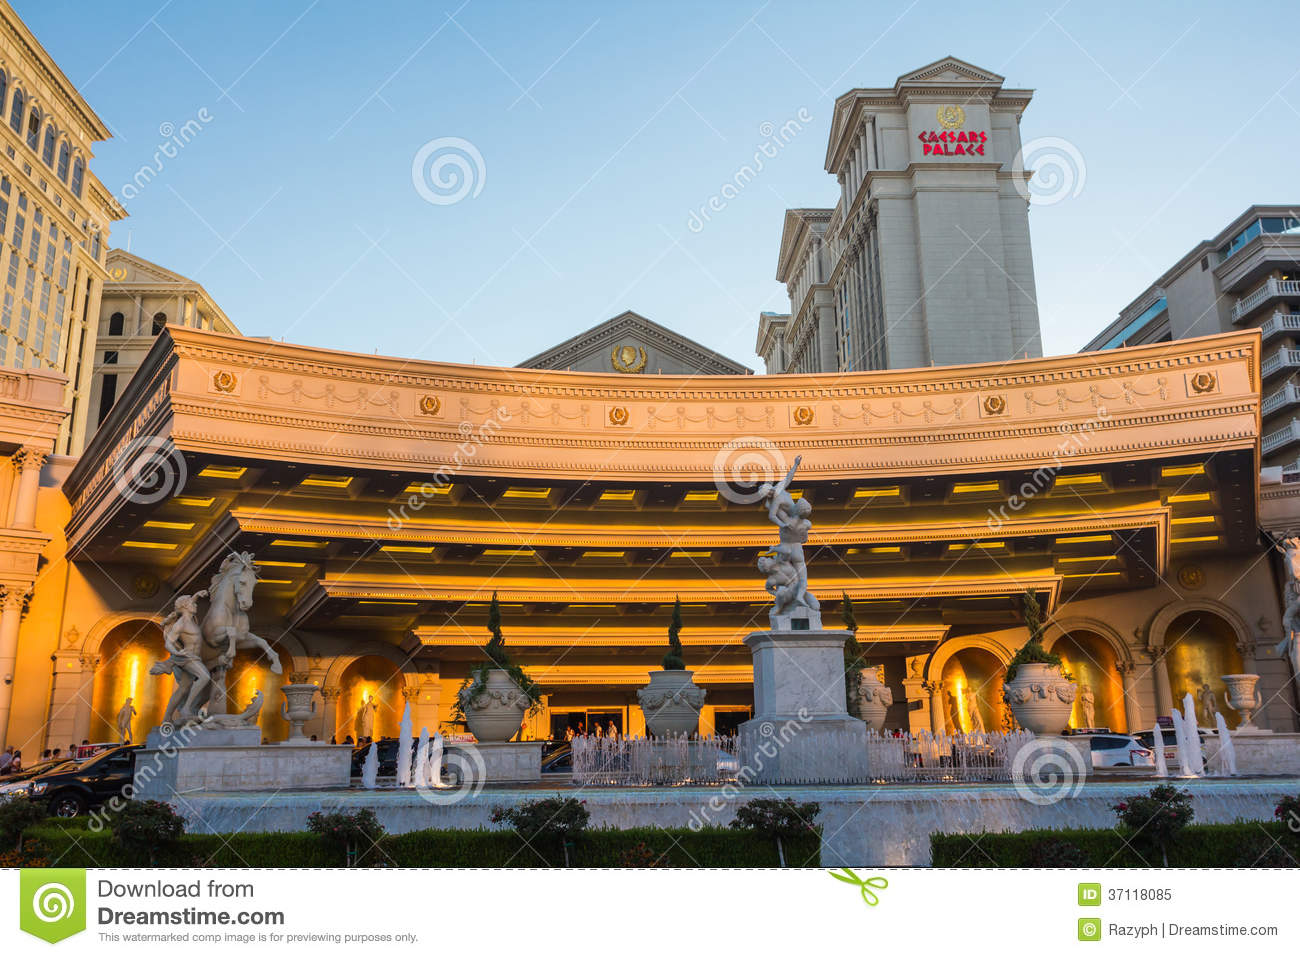 Statues and fountains at the entrance of caesar 39 s palace for Garden statues las vegas nv